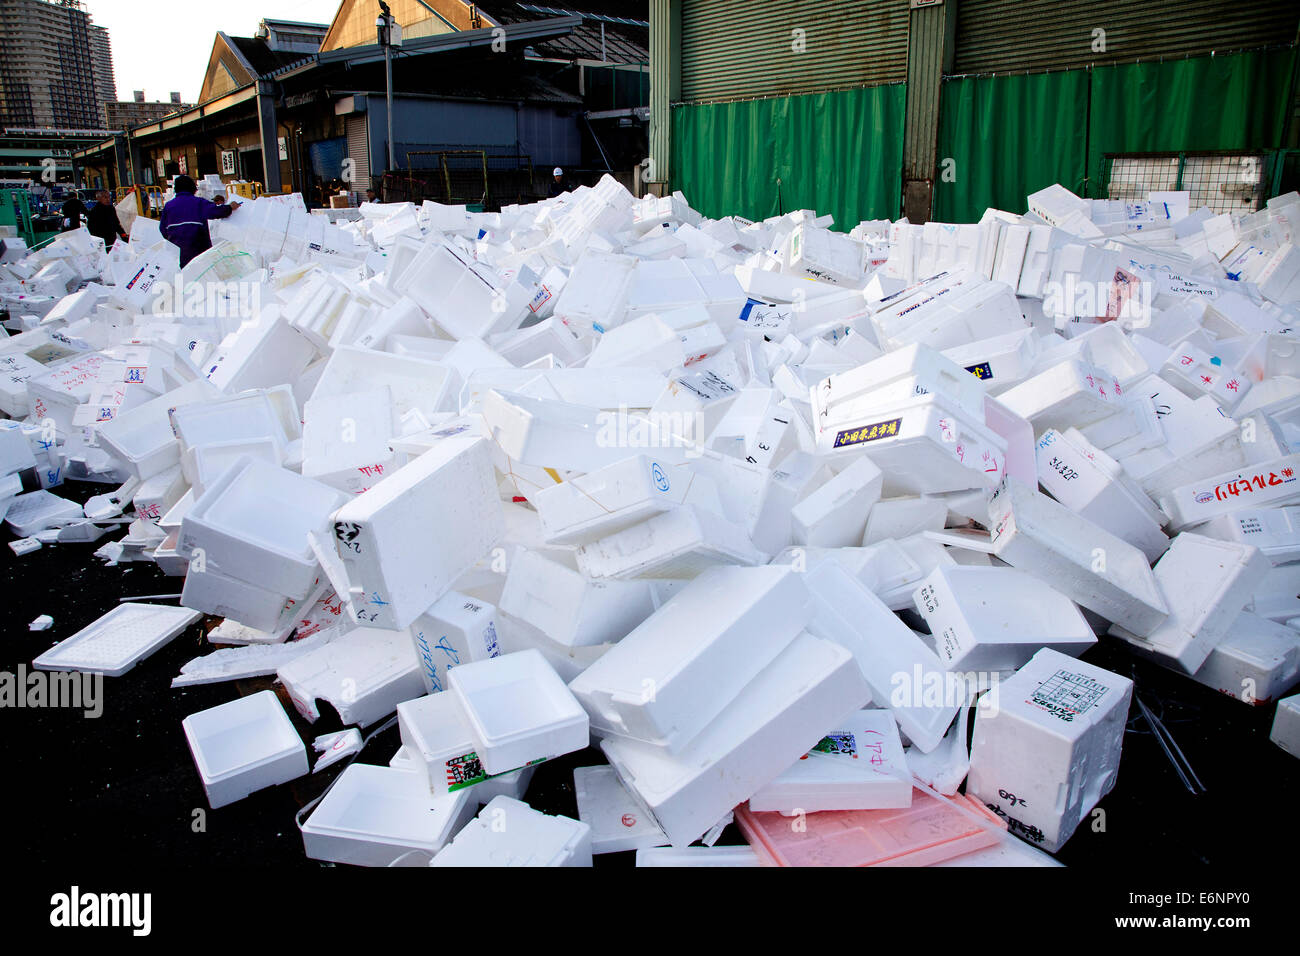 Tsukiji fish market, Tokyo, Japan, Asia, the largest wholesale seafood market in the world. Empty boxes - Stock Image